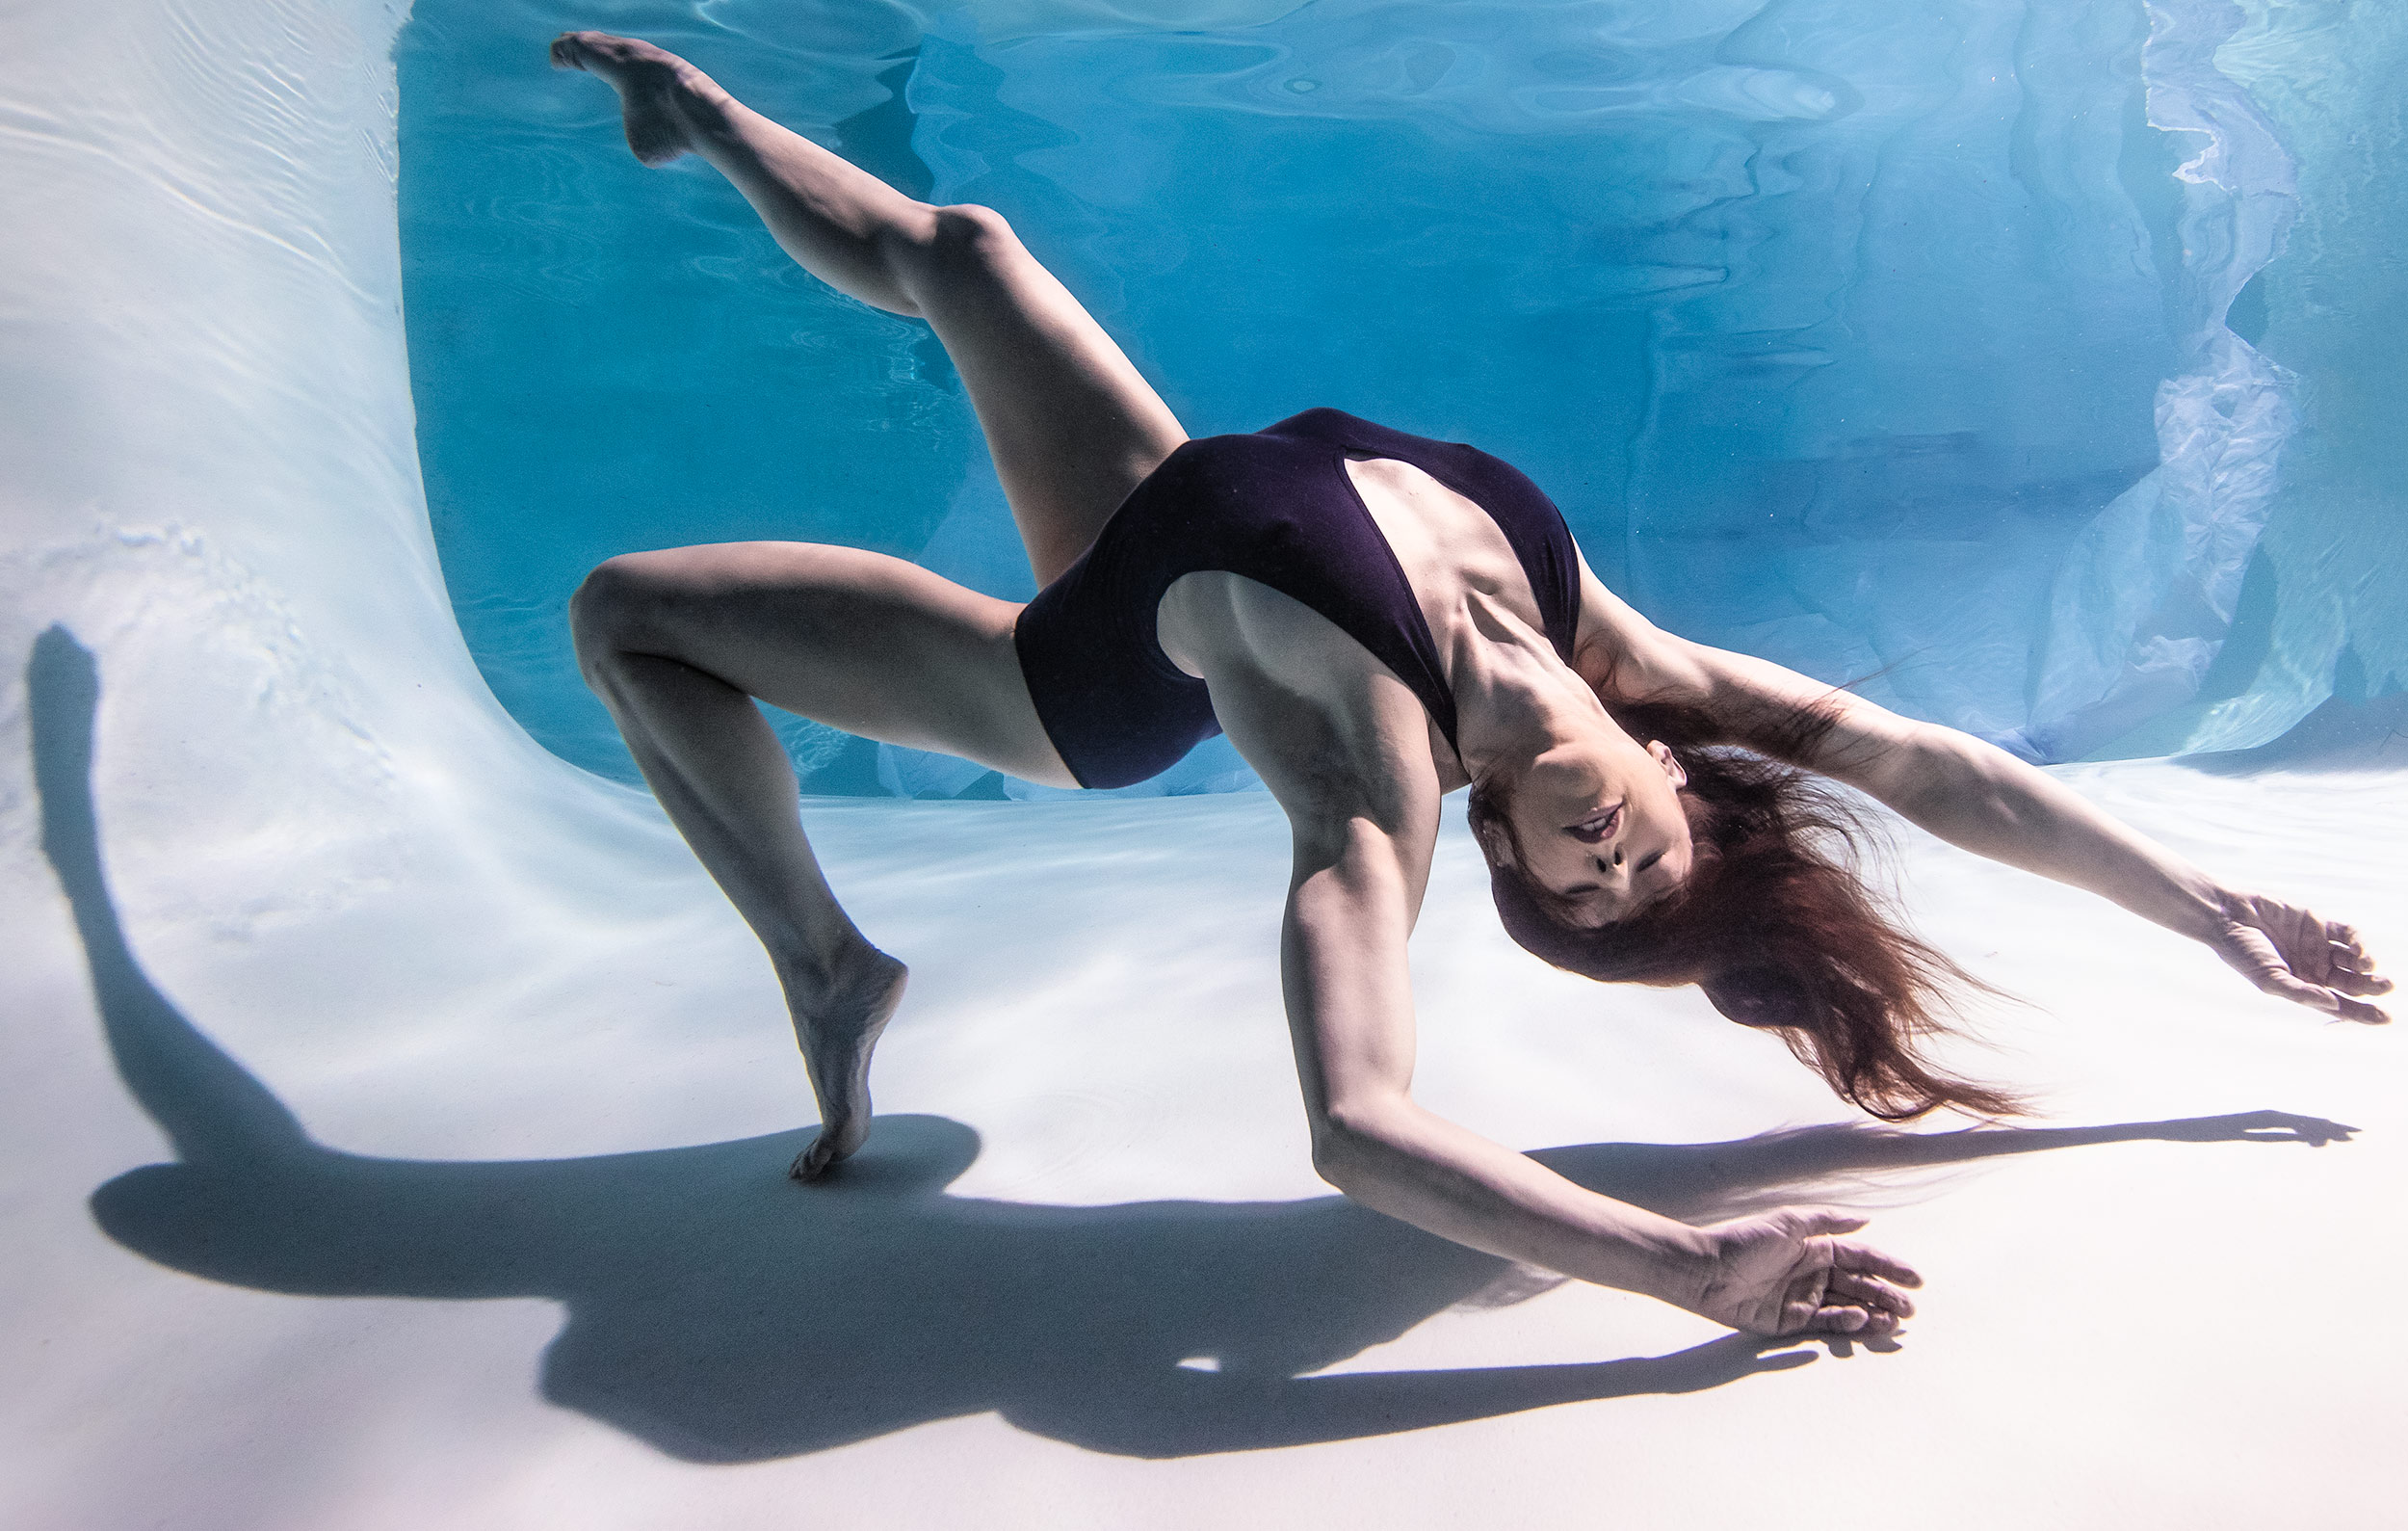 Underwater dancer performing a contorted move with her hair flowing. Cirque du Soleil performer.